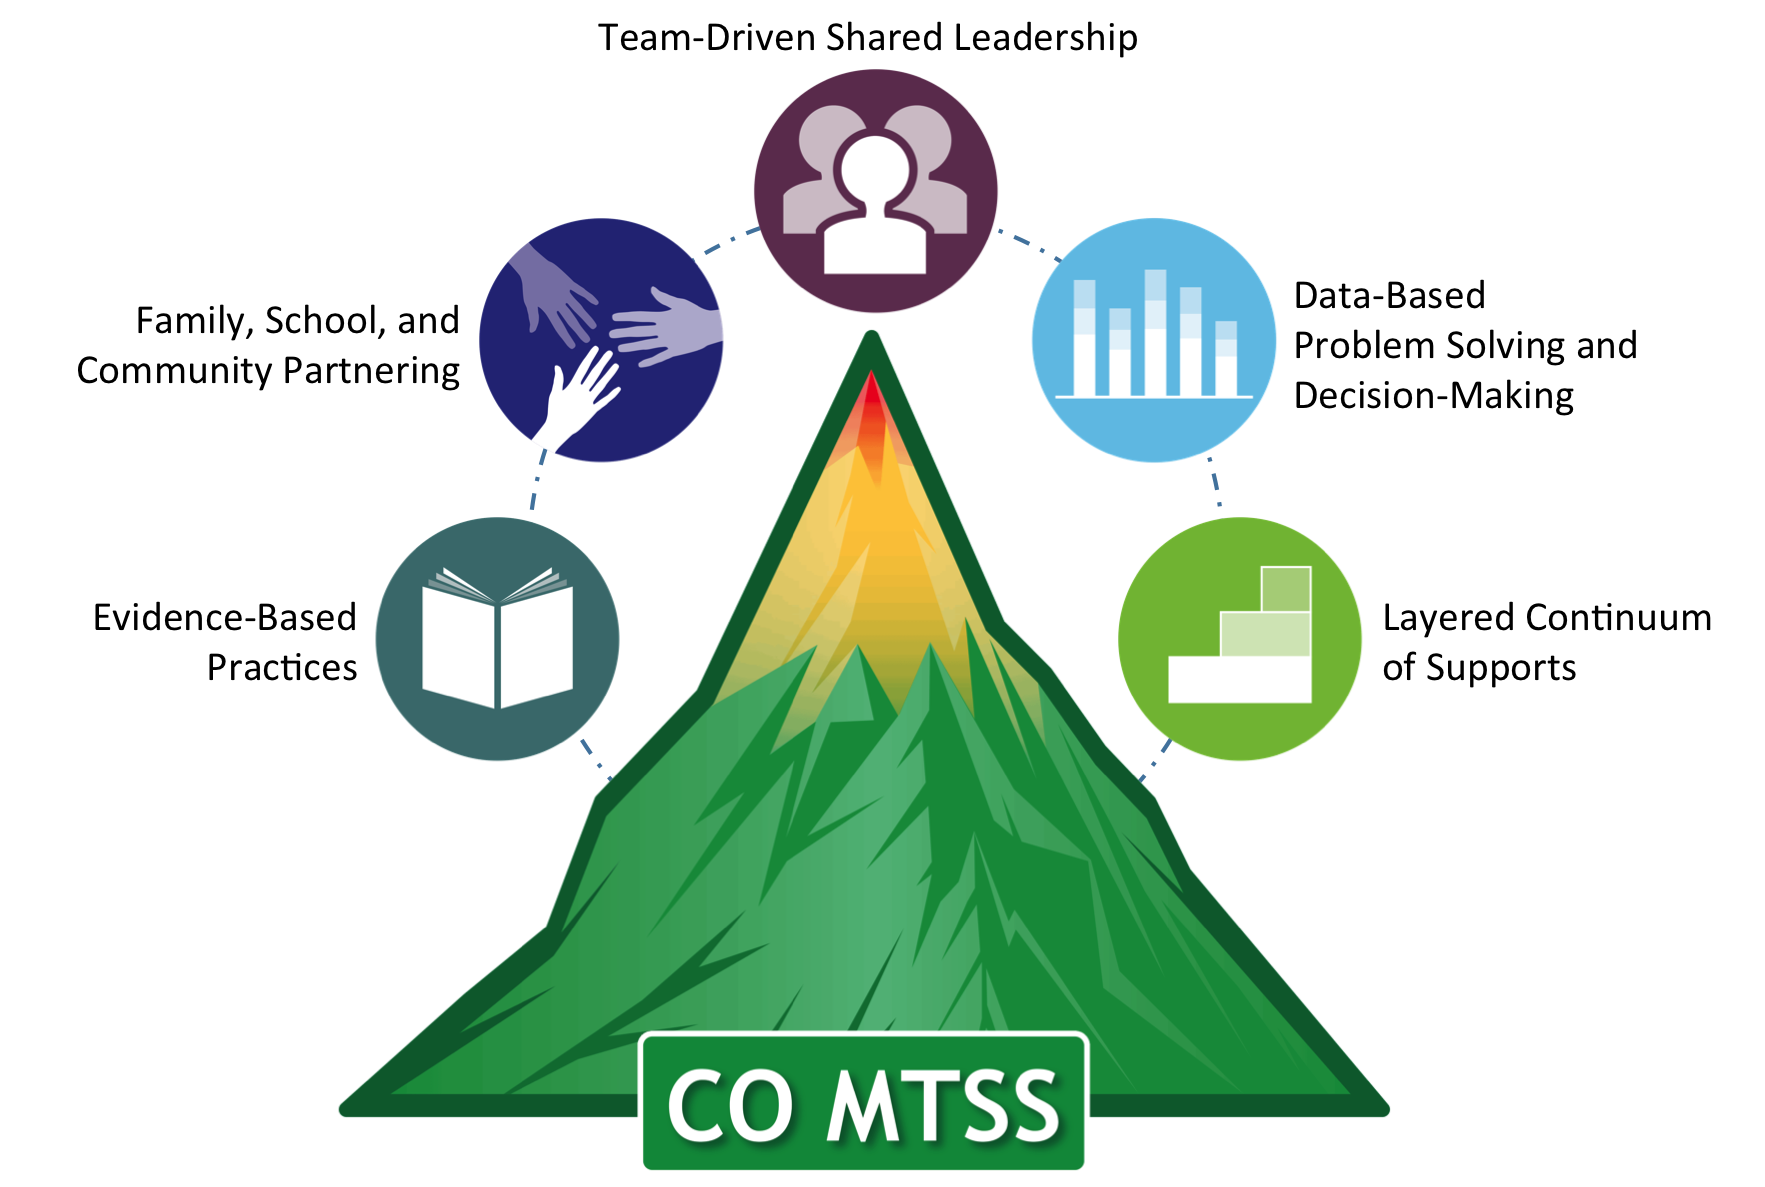 Tri-colored mountain image, with green at the base, yellow near top, and red at peak. Surrounding mountain are 5 Essential Components and corresponding icons. From bottom left, clockwise, these are: Evidence-Based Practices; Family, School, and Community Partnering; Team-Driven Shared Leadership; Data-Based Problem Solving and Decision-Making; and Layered Continuum of Supports.